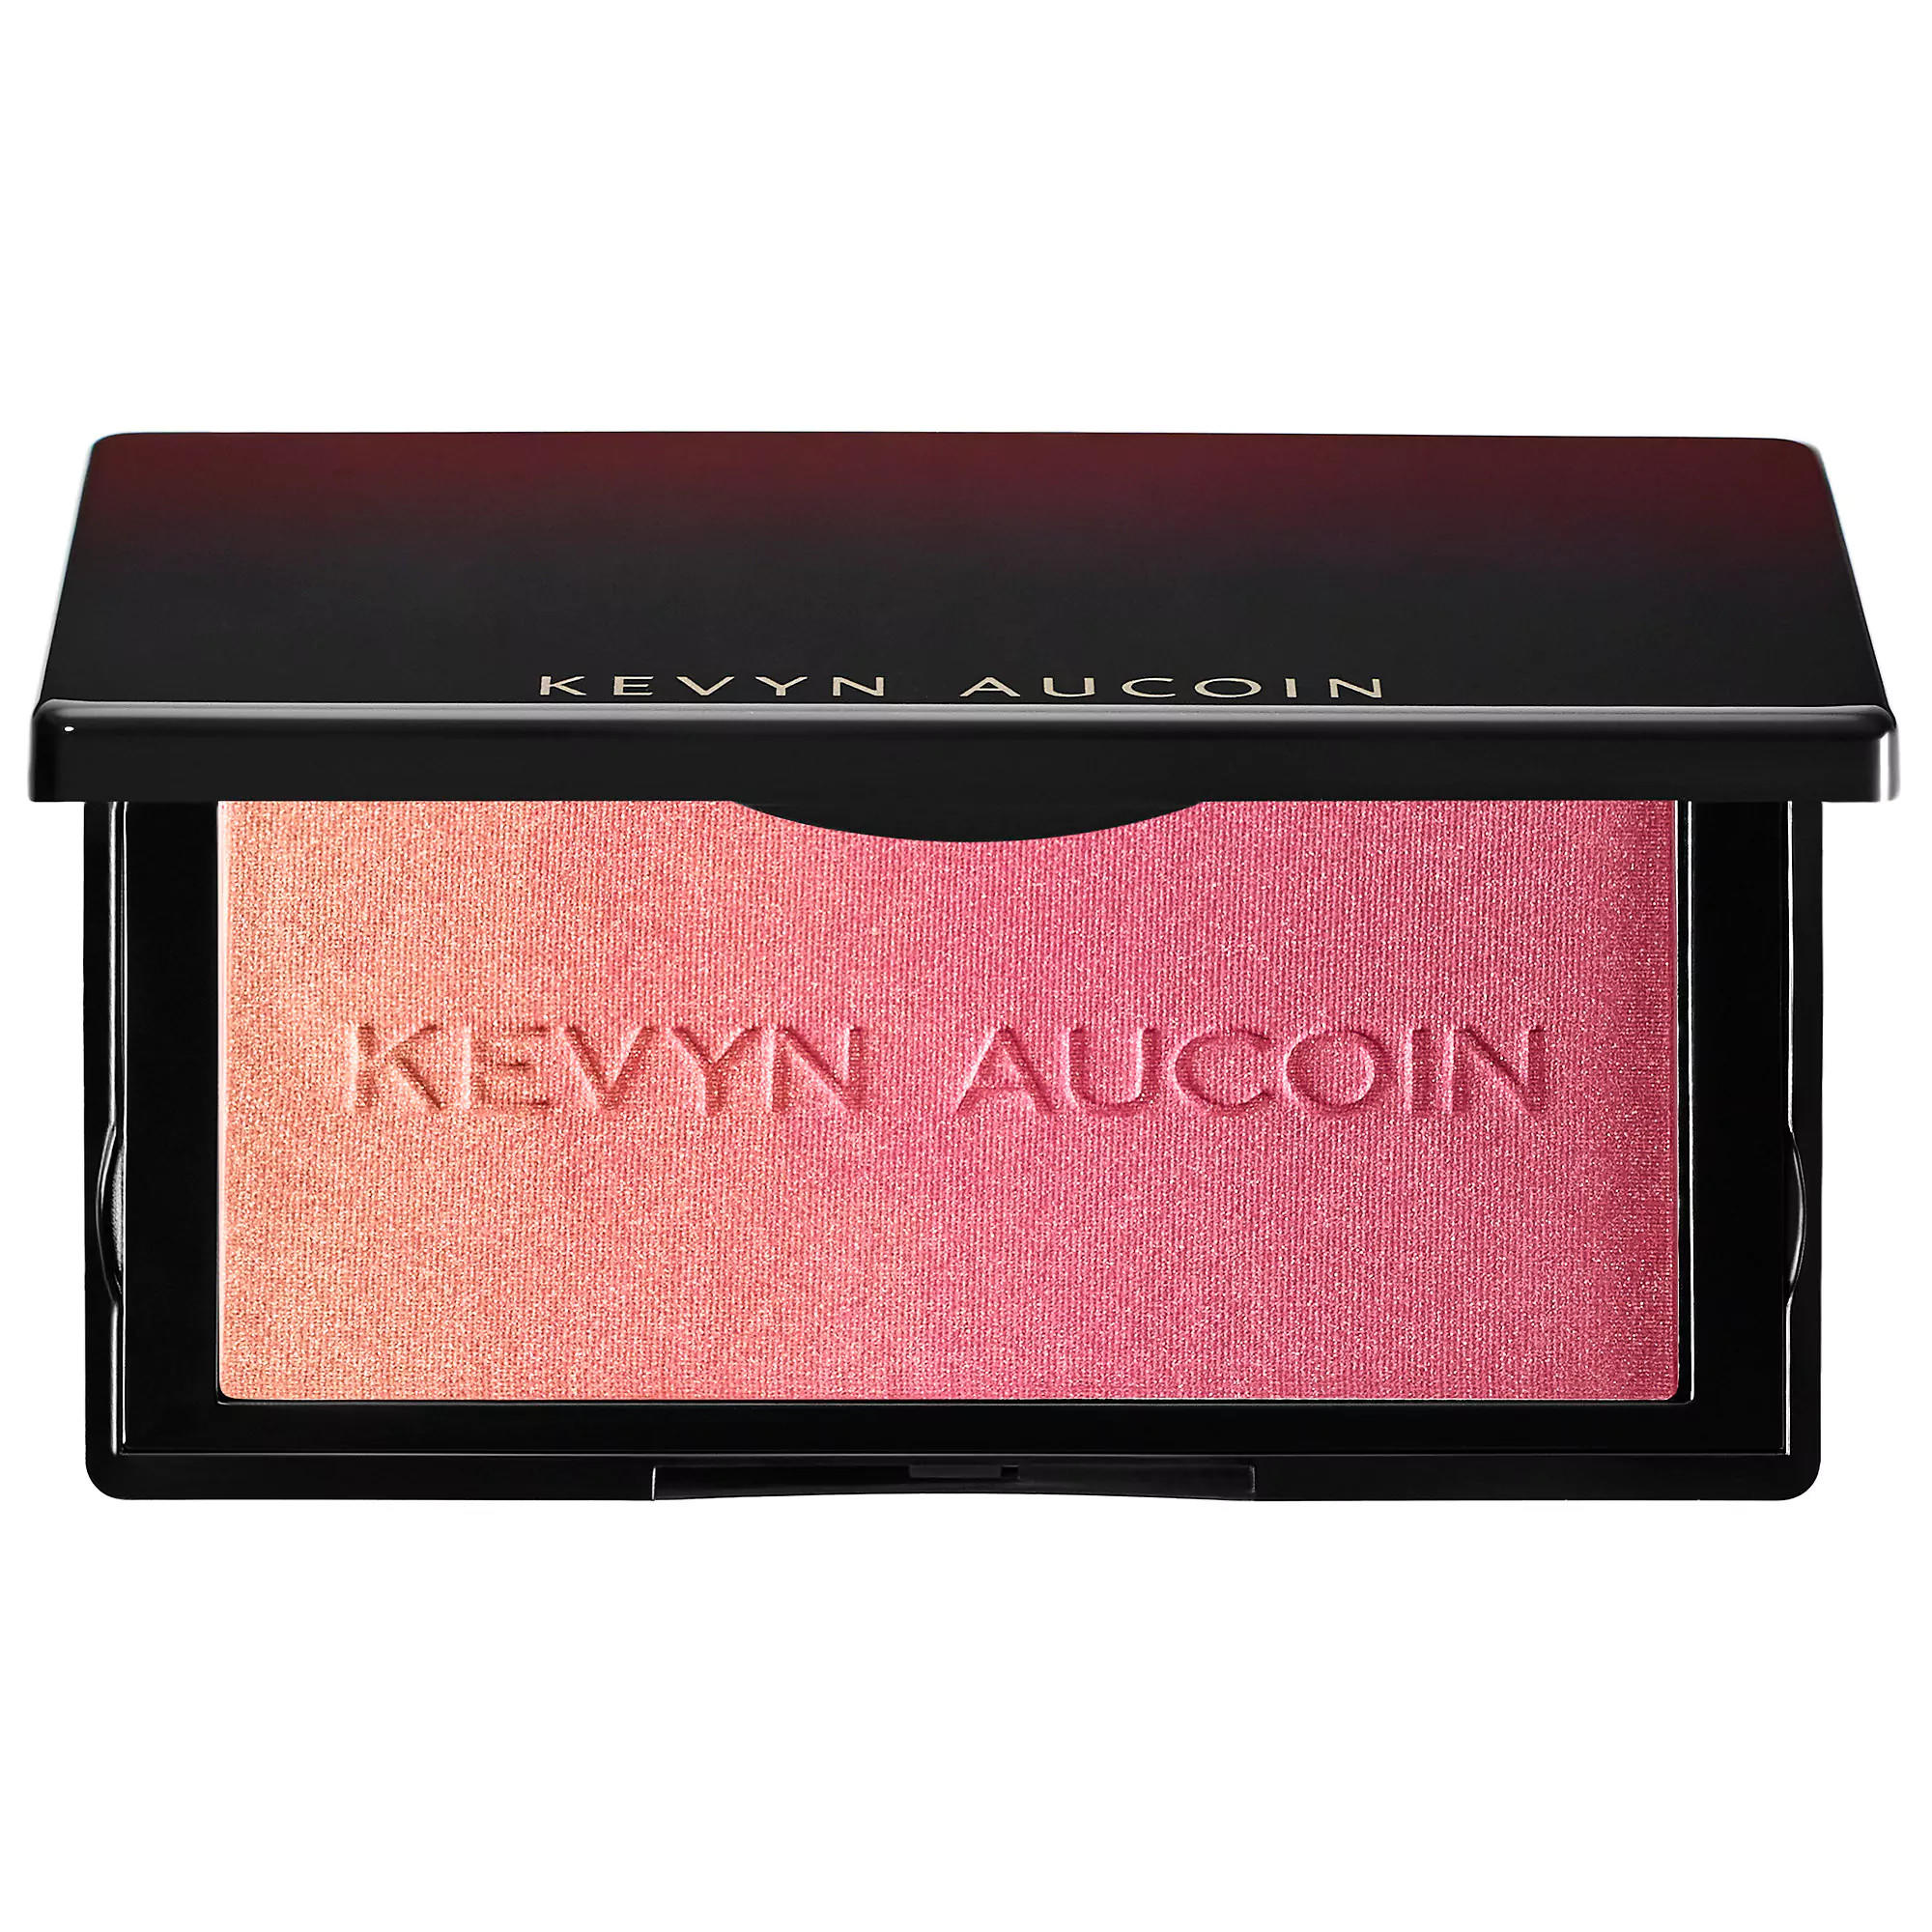 Kevyn Aucoin The Neo-Blush Rose Cliff